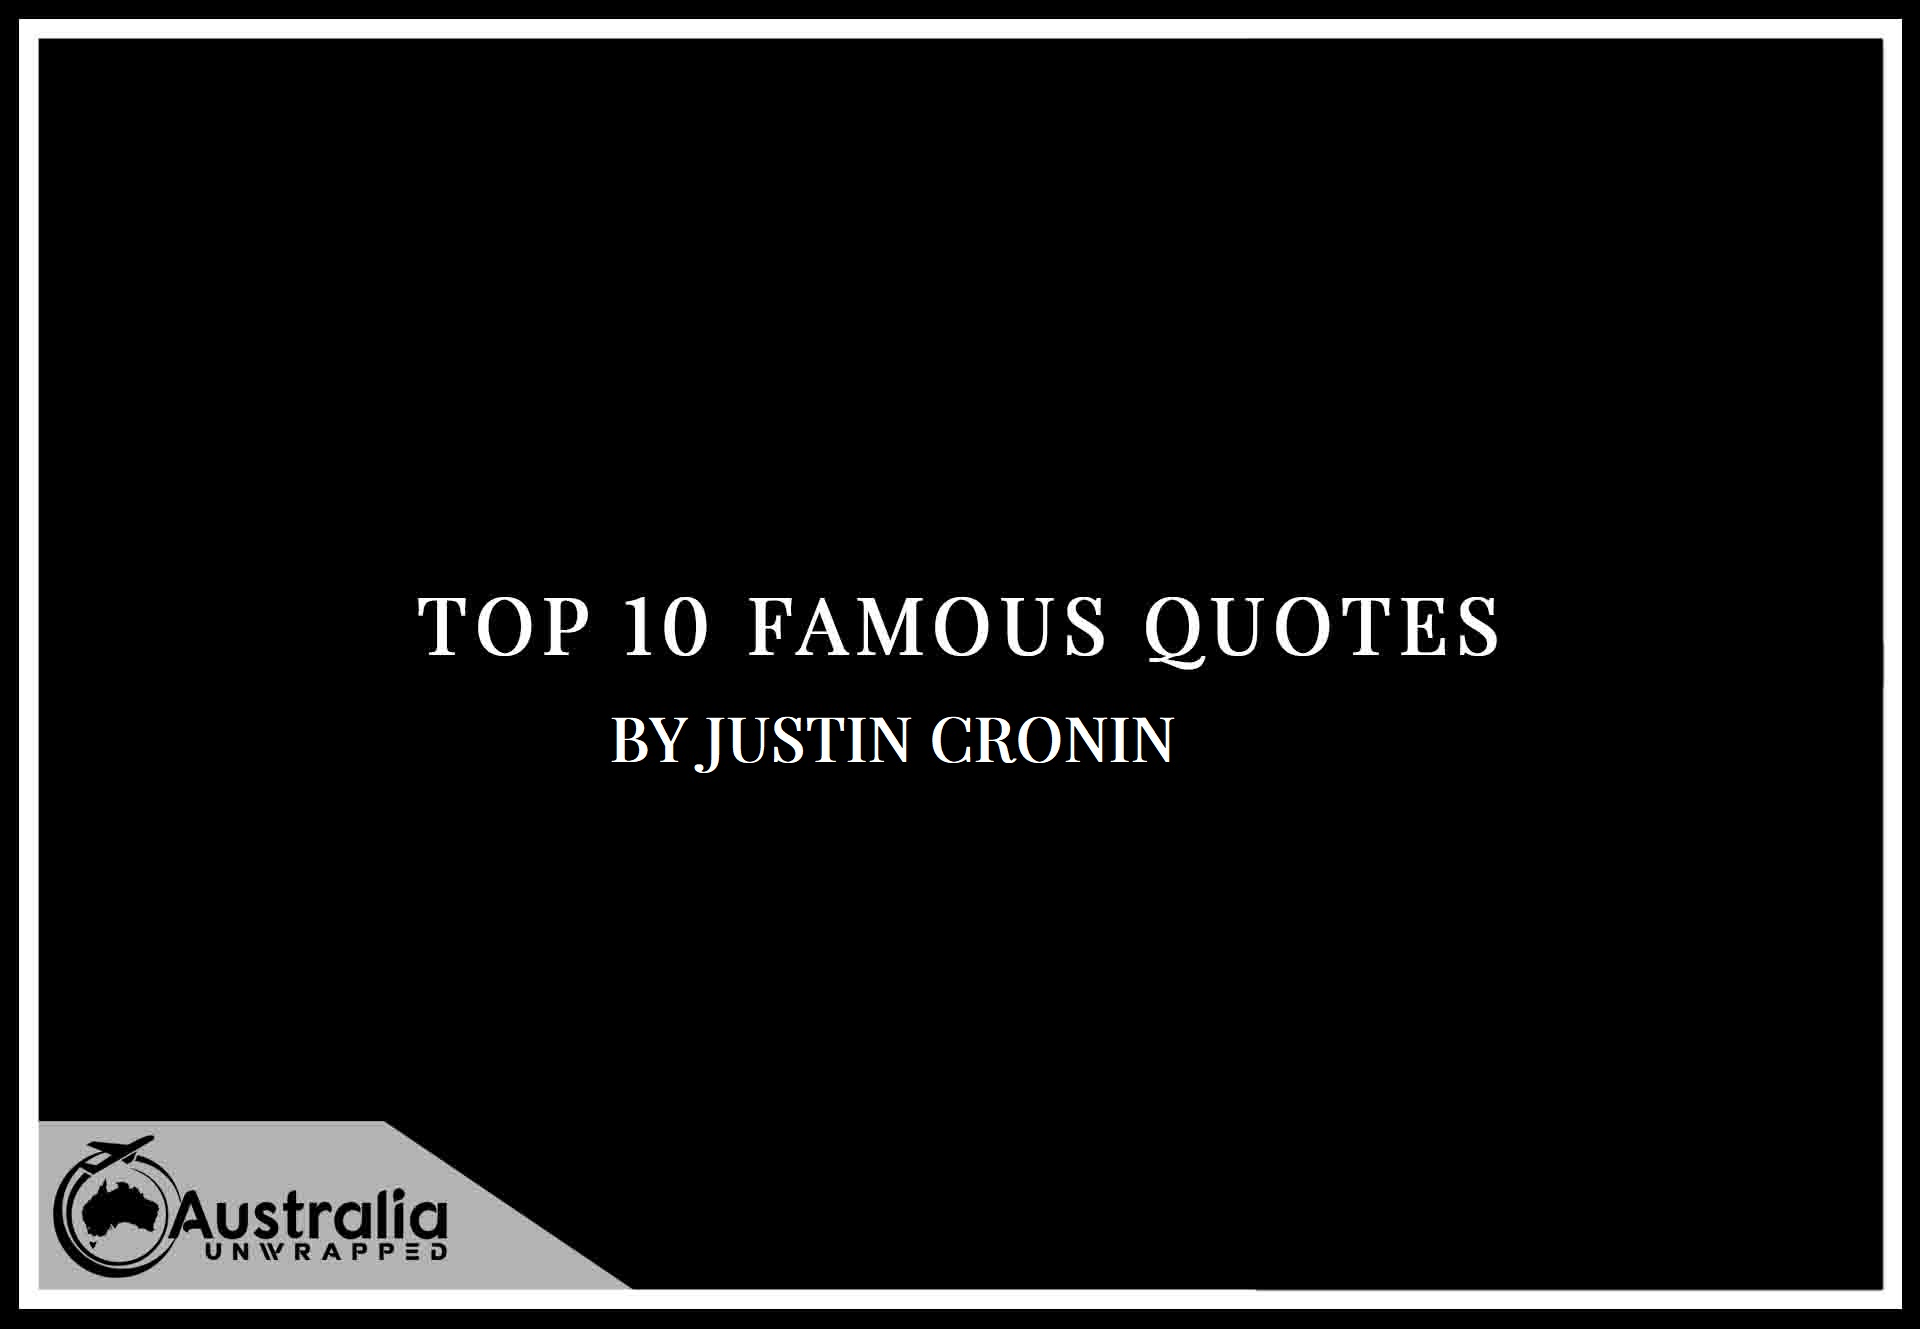 Top 10 Famous Quotes by Author Justin Cronin